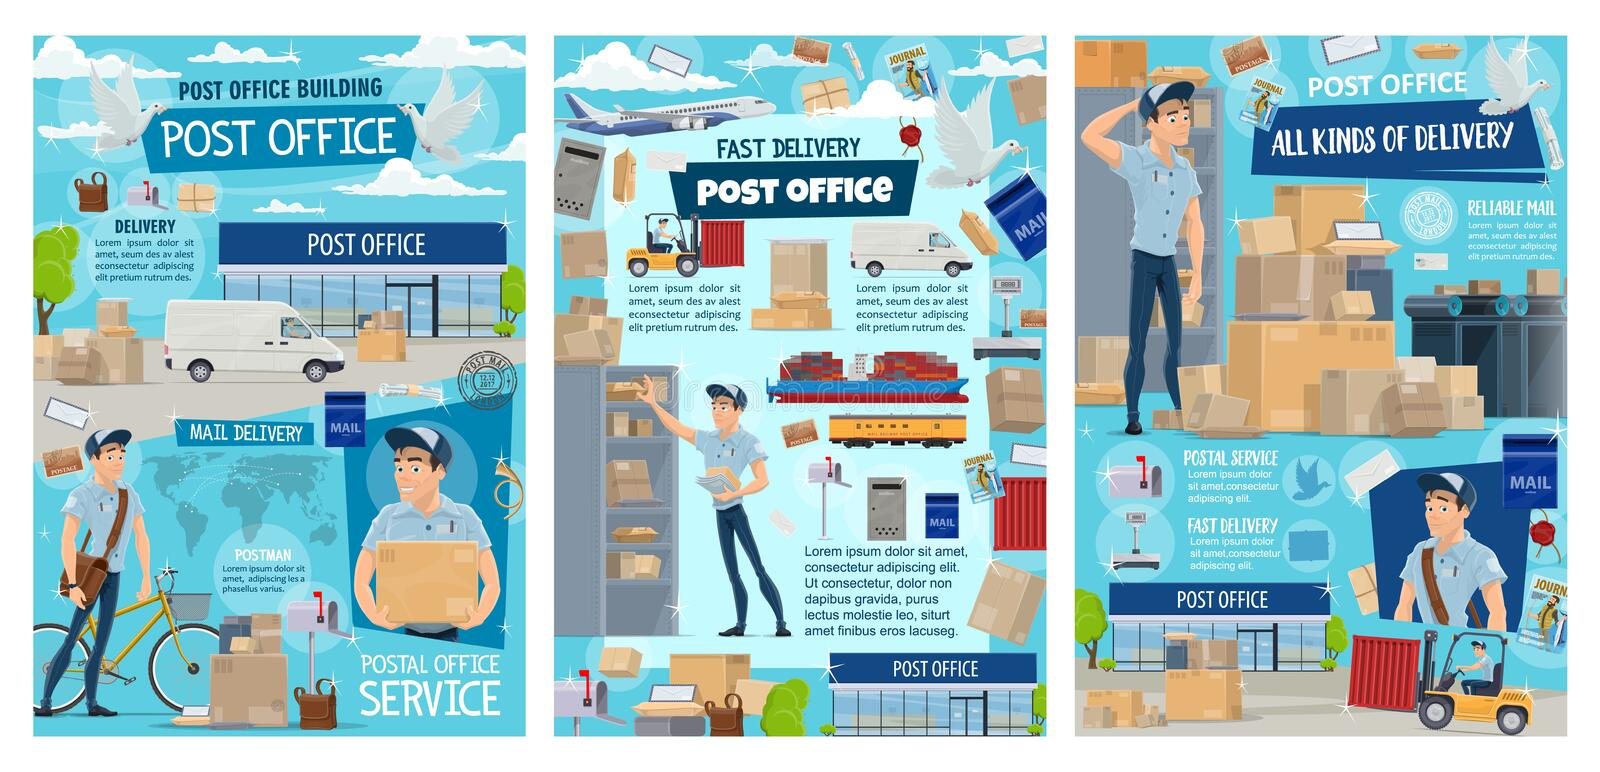 Post office, postman, mail and parcel delivery royalty free illustration